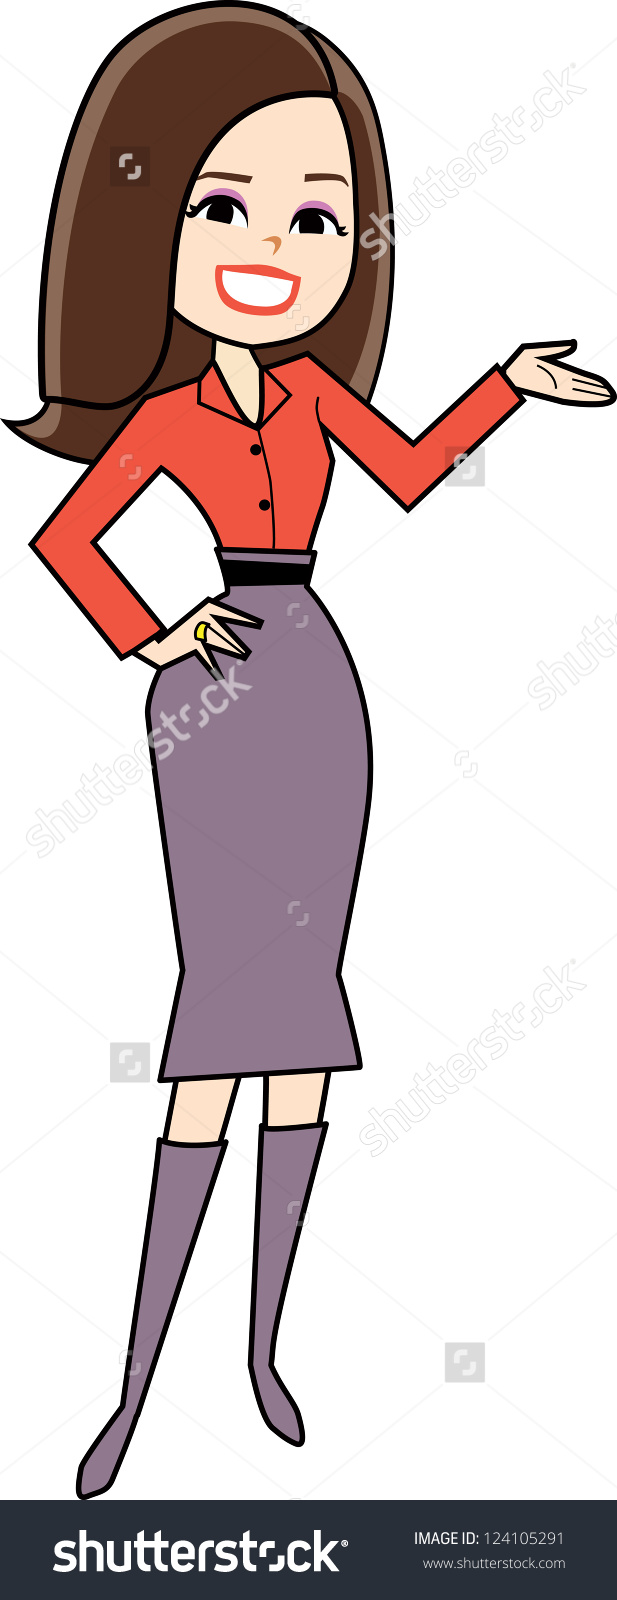 Cartoon Woman Clipart Retro Style Drawing Stock Vector 124105291.